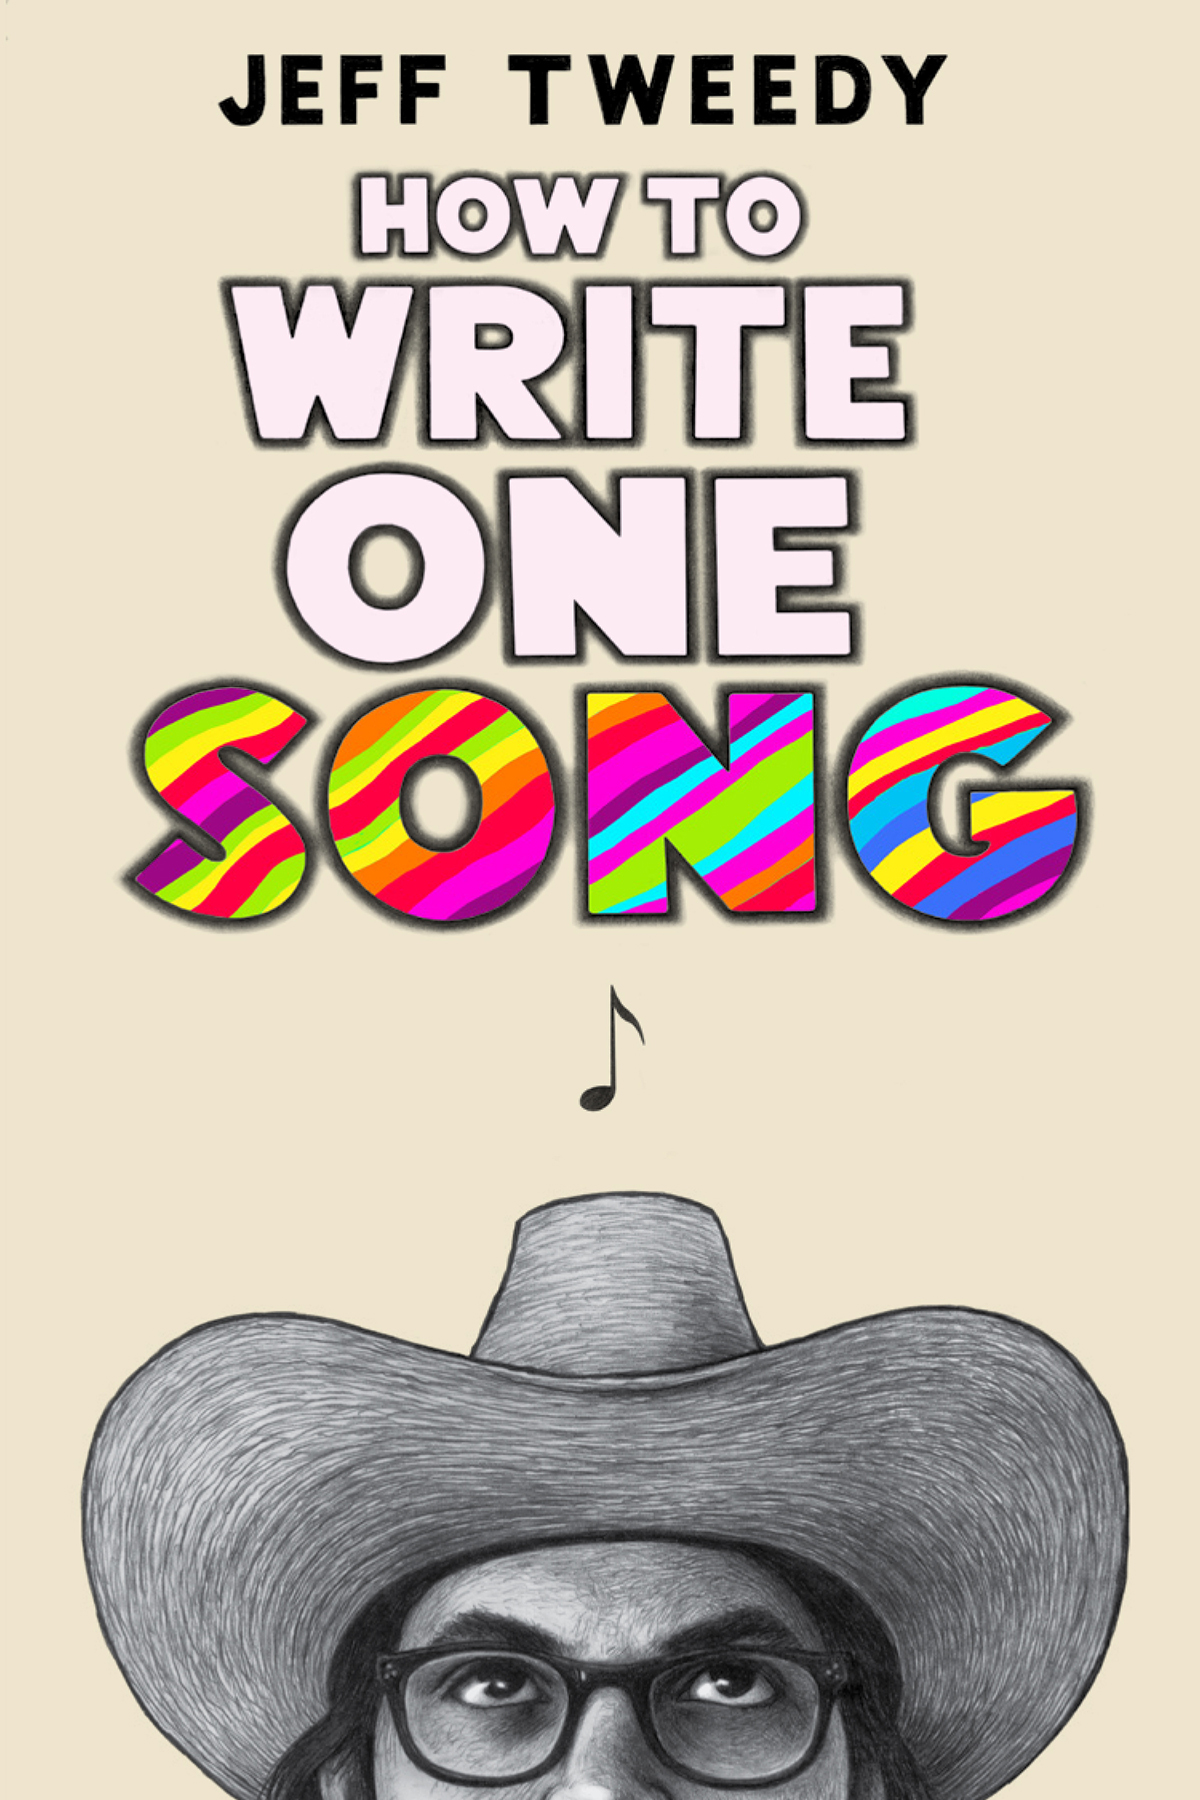 jeff tweedy how to write one song book cover